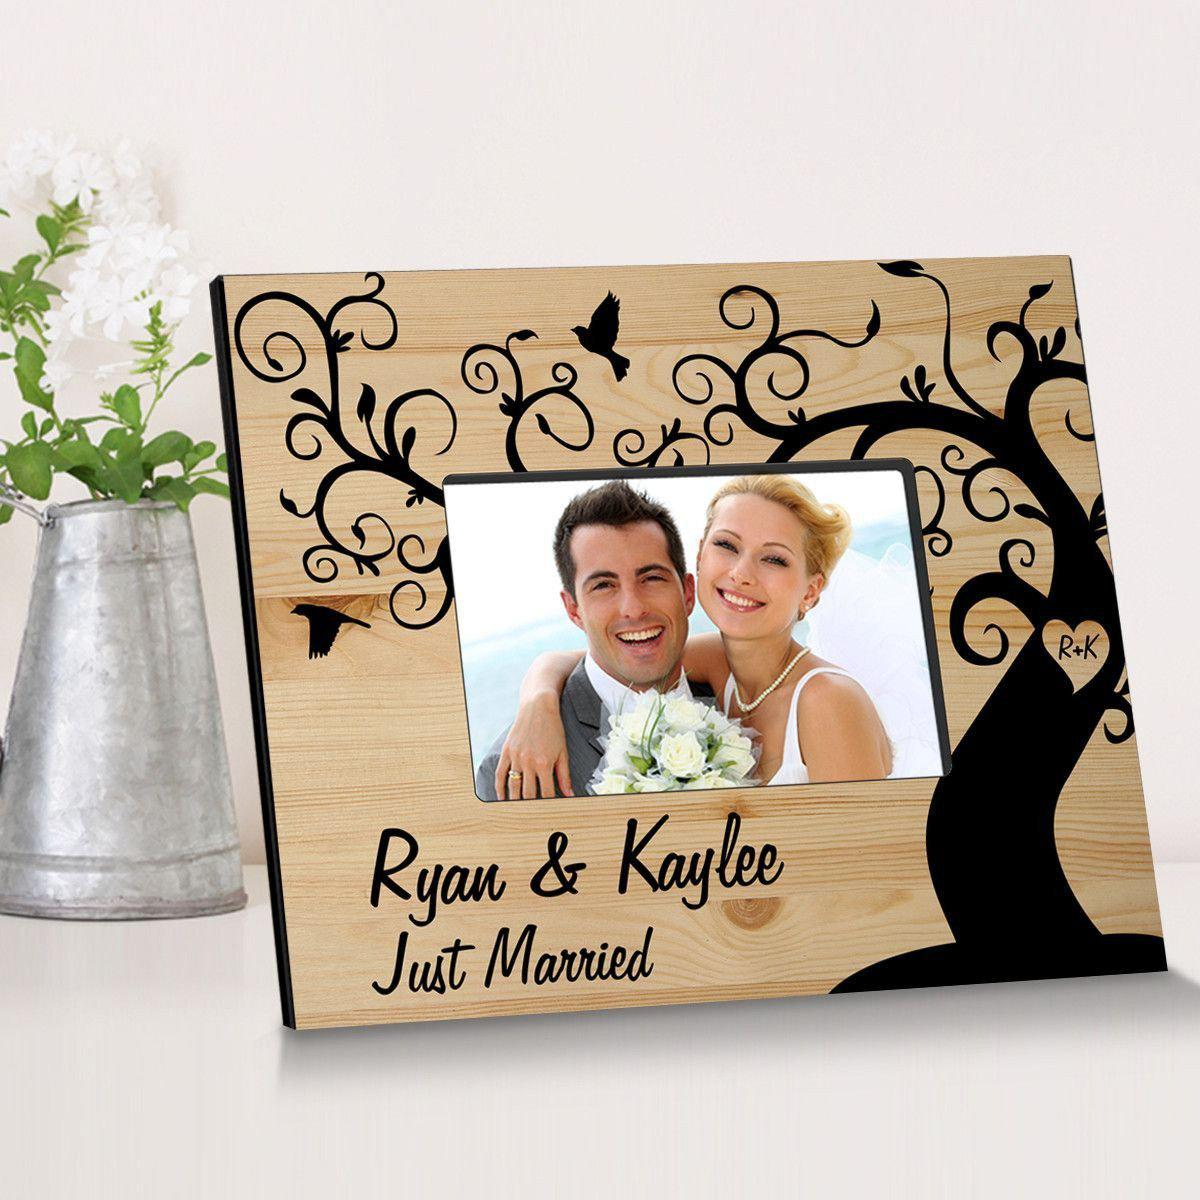 Personalized-Winding-Down-Together-Wooden-Picture-Frame